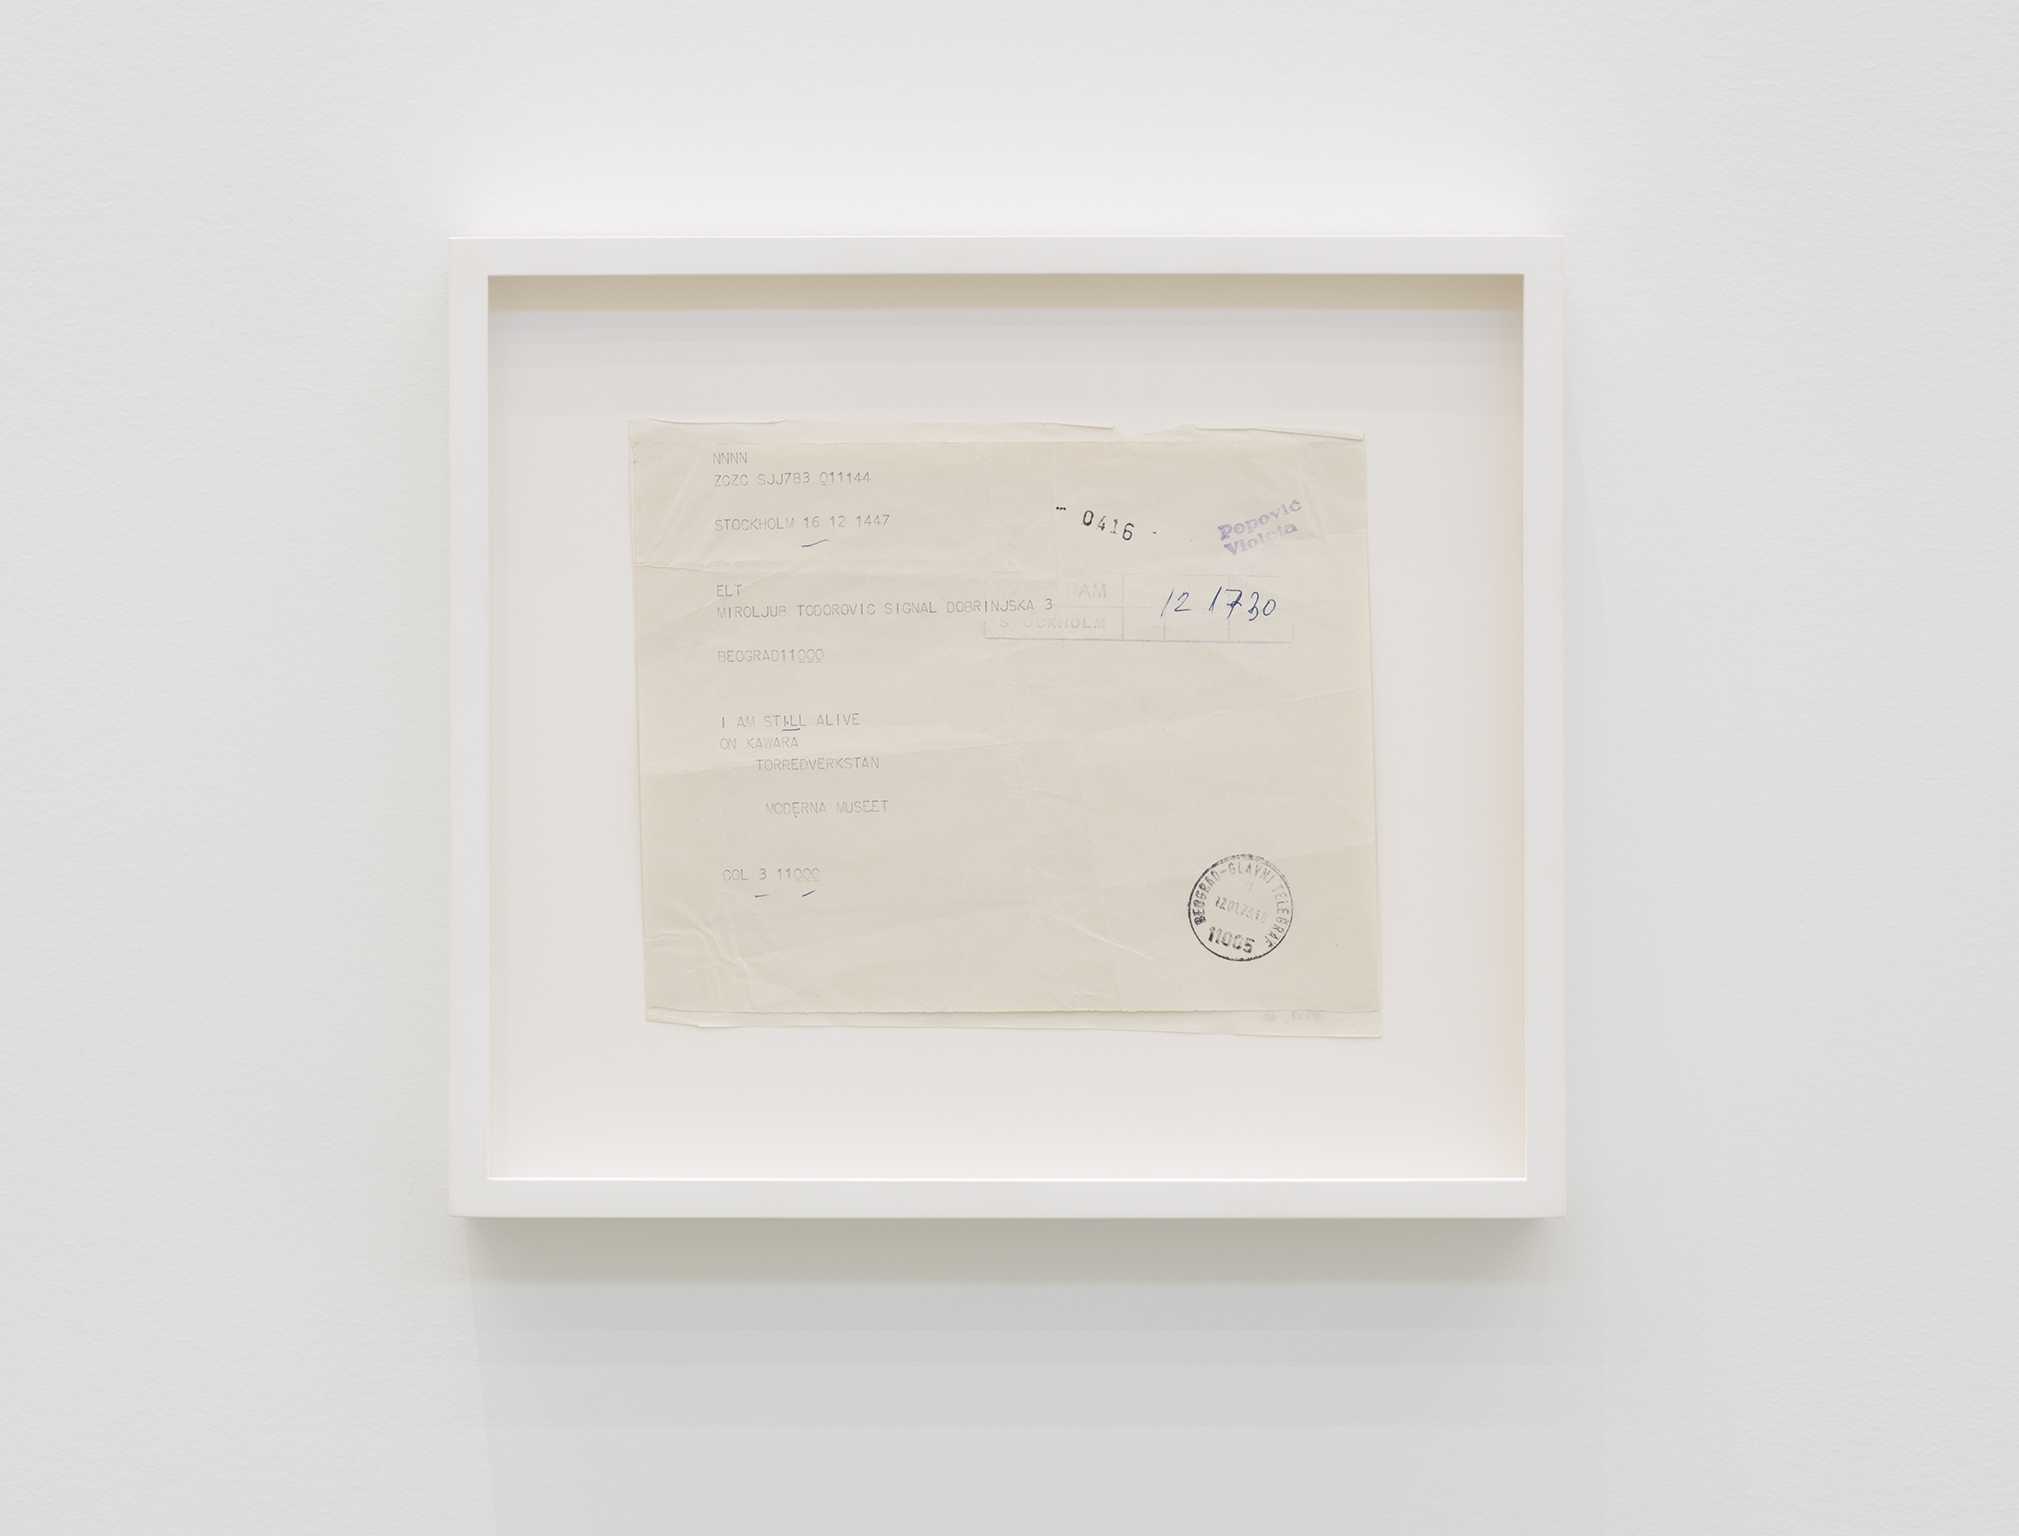 ​On Kawara, I am still alive, 1973, printed telegram, 11 x 13 in. (28 x 32 cm) by